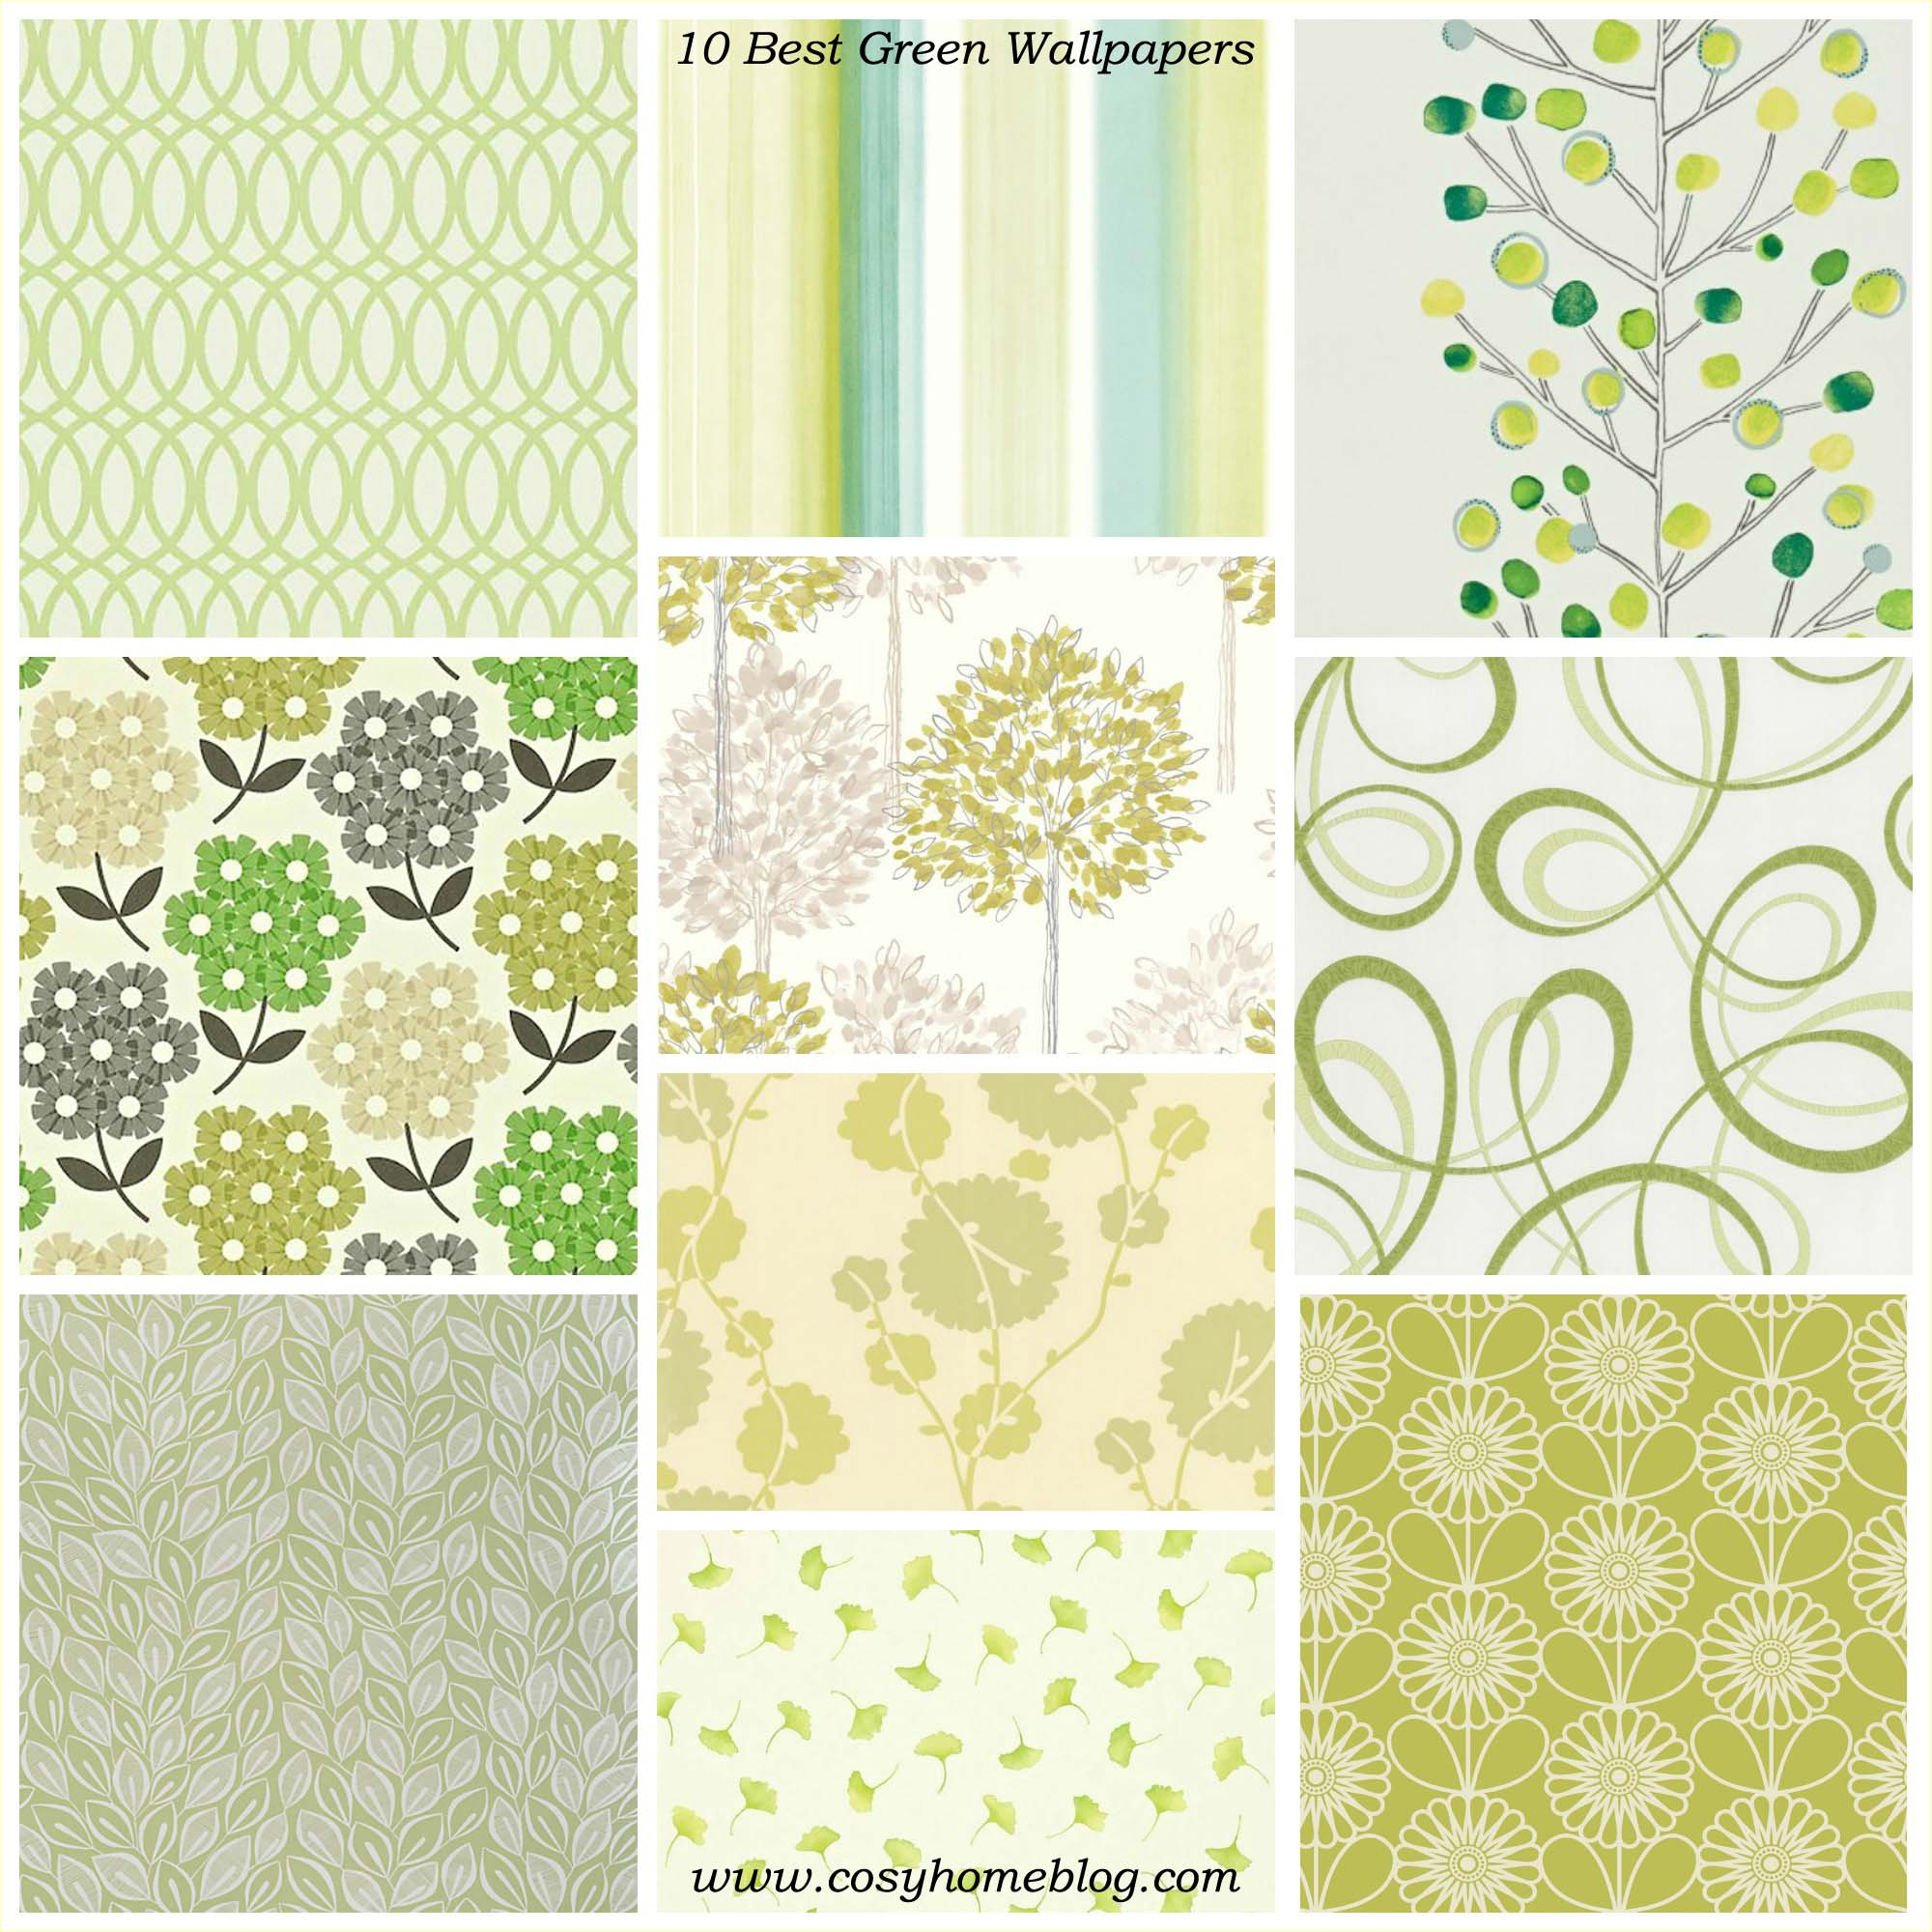 Spring greens 10 green wallpaper decorating ideas for Wallpaper ideas for your home